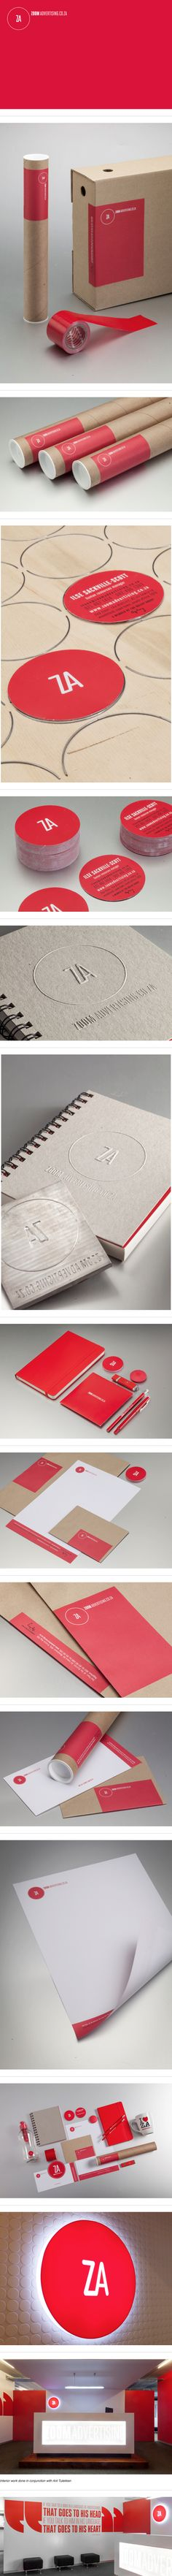 Agency Branding by Ben Johnston, via Behance #identity #packaging #branding #marketing PD